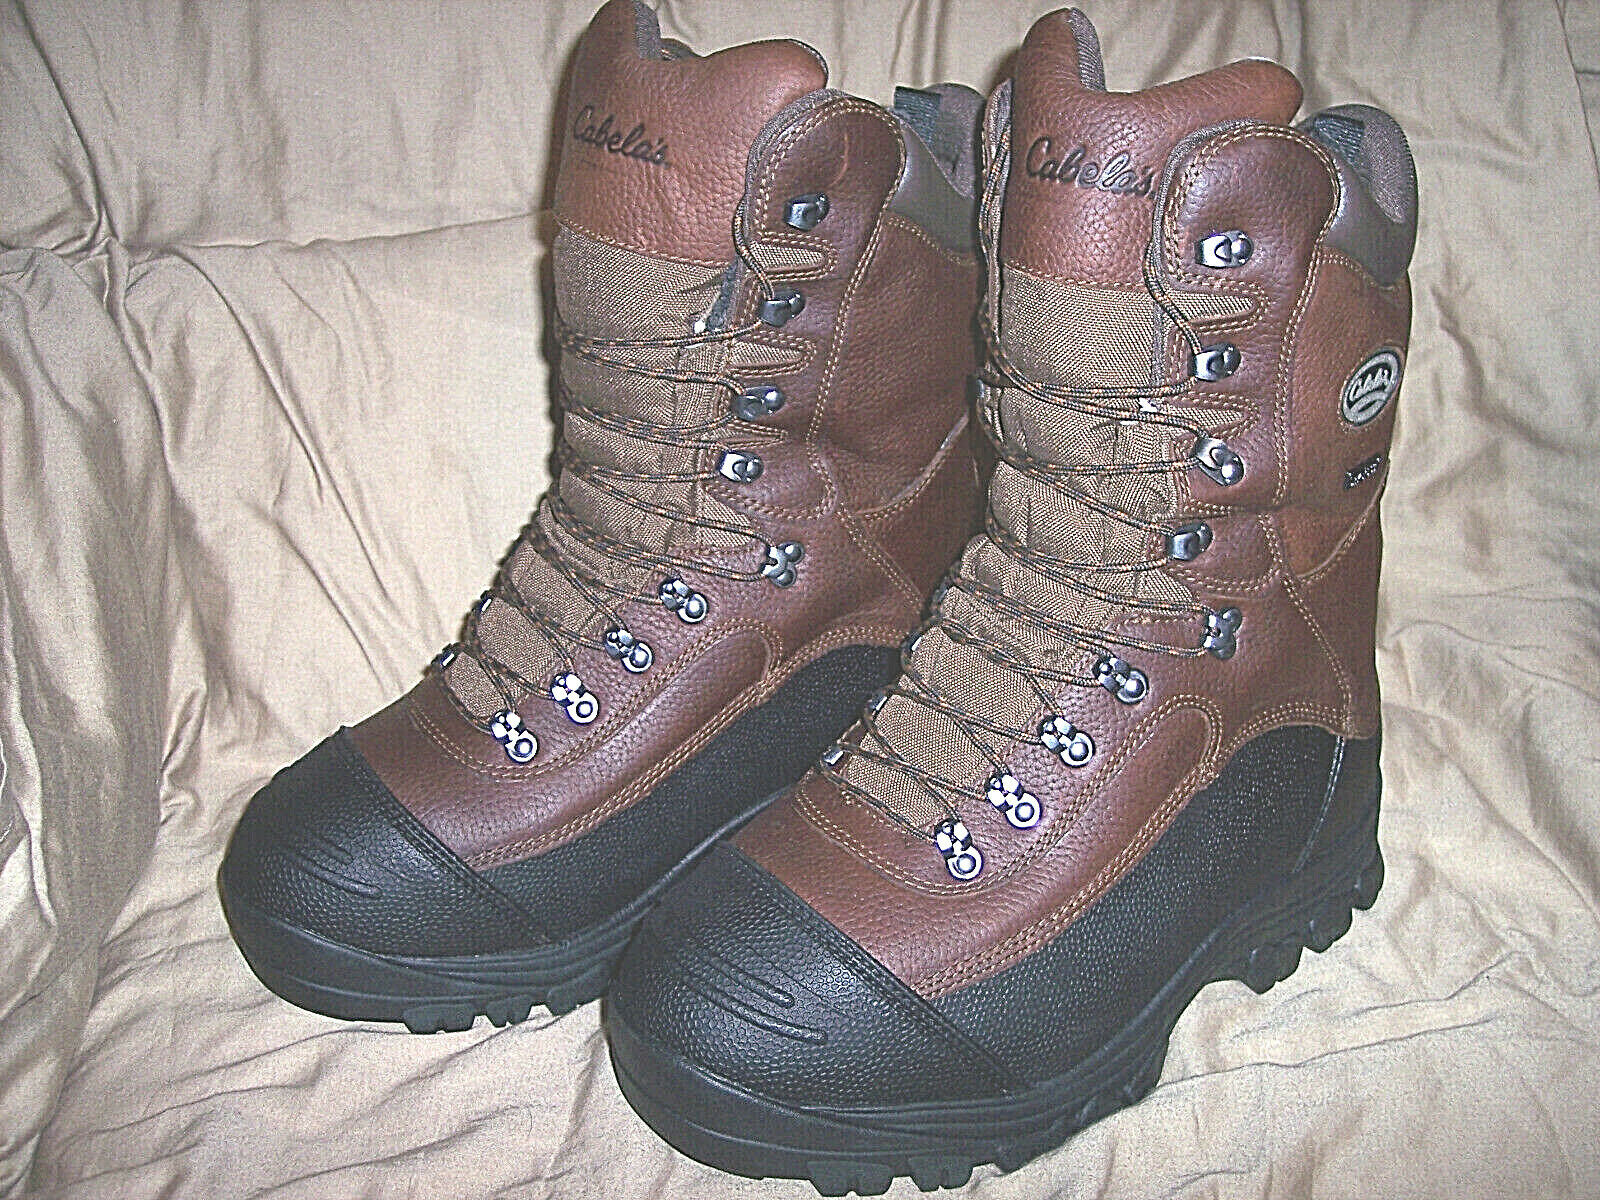 Mens 11 Boots 1200 Gram Insulated Hunting Boots Extreme Cold Weather Pac Boots